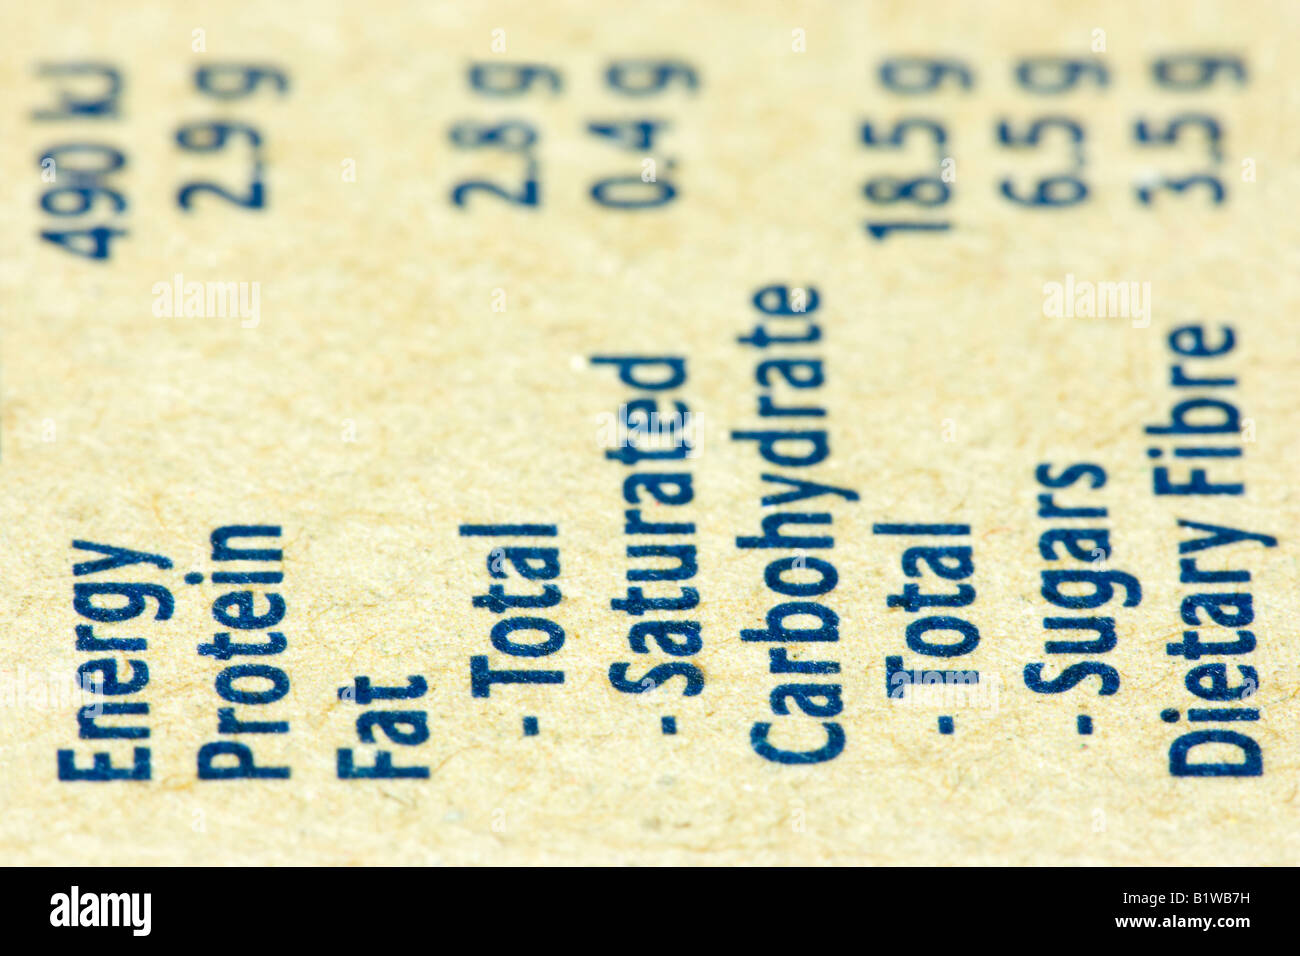 Nutritional Information label of healthy food - Stock Image